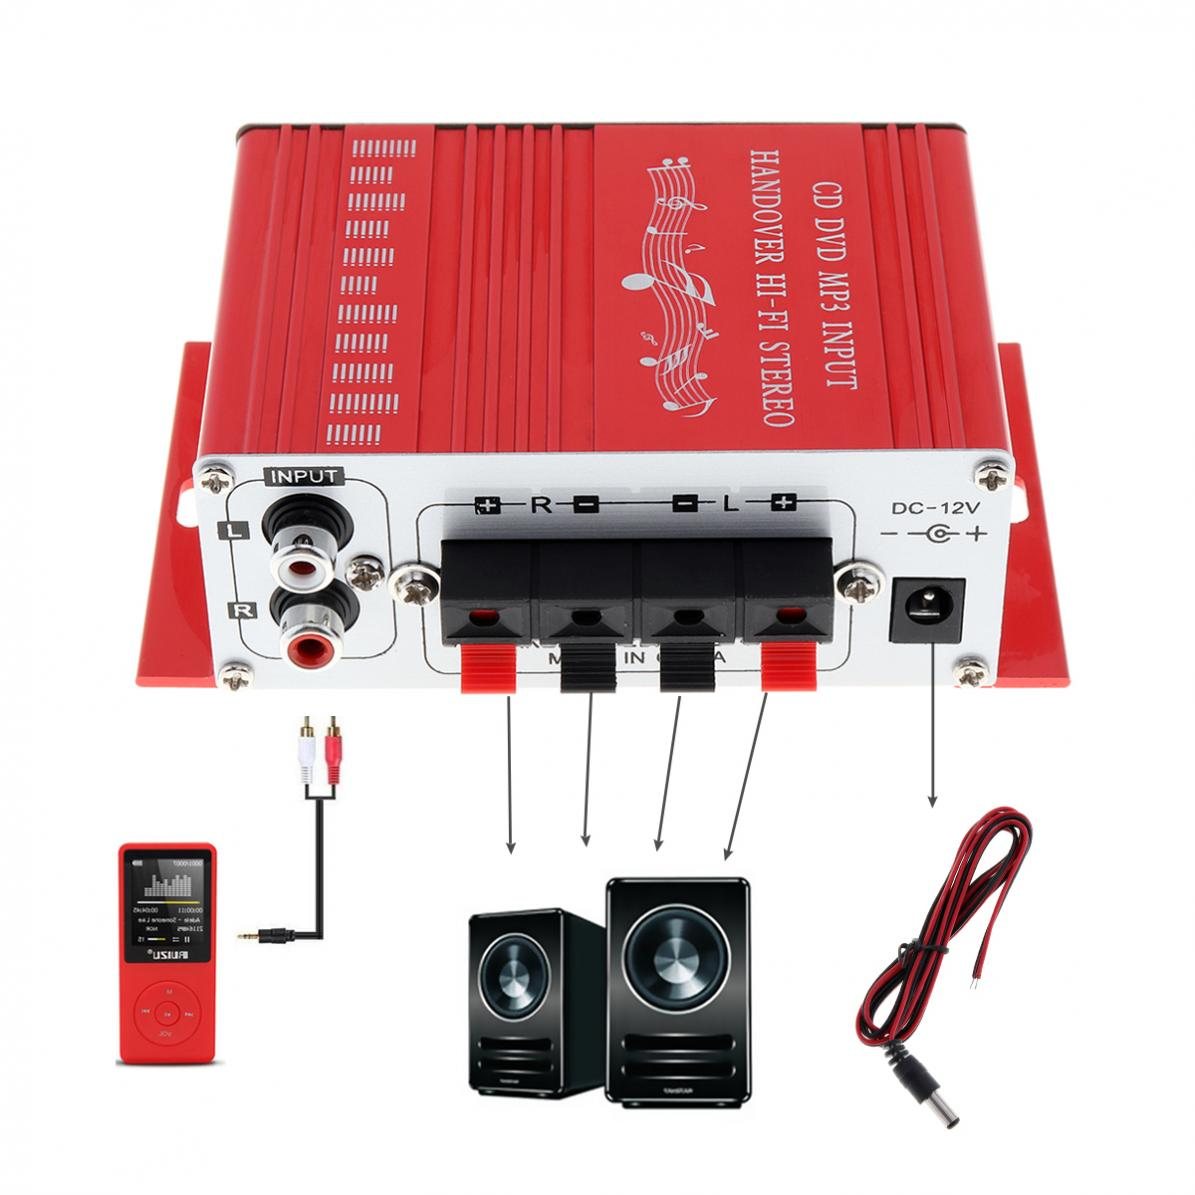 Mini Car Amplifier Motorcycle Home Boat Auto Stereo Audio Amplifier 2 Channel Digital Hi-Fi Amp Support CD DVD MP3 Input